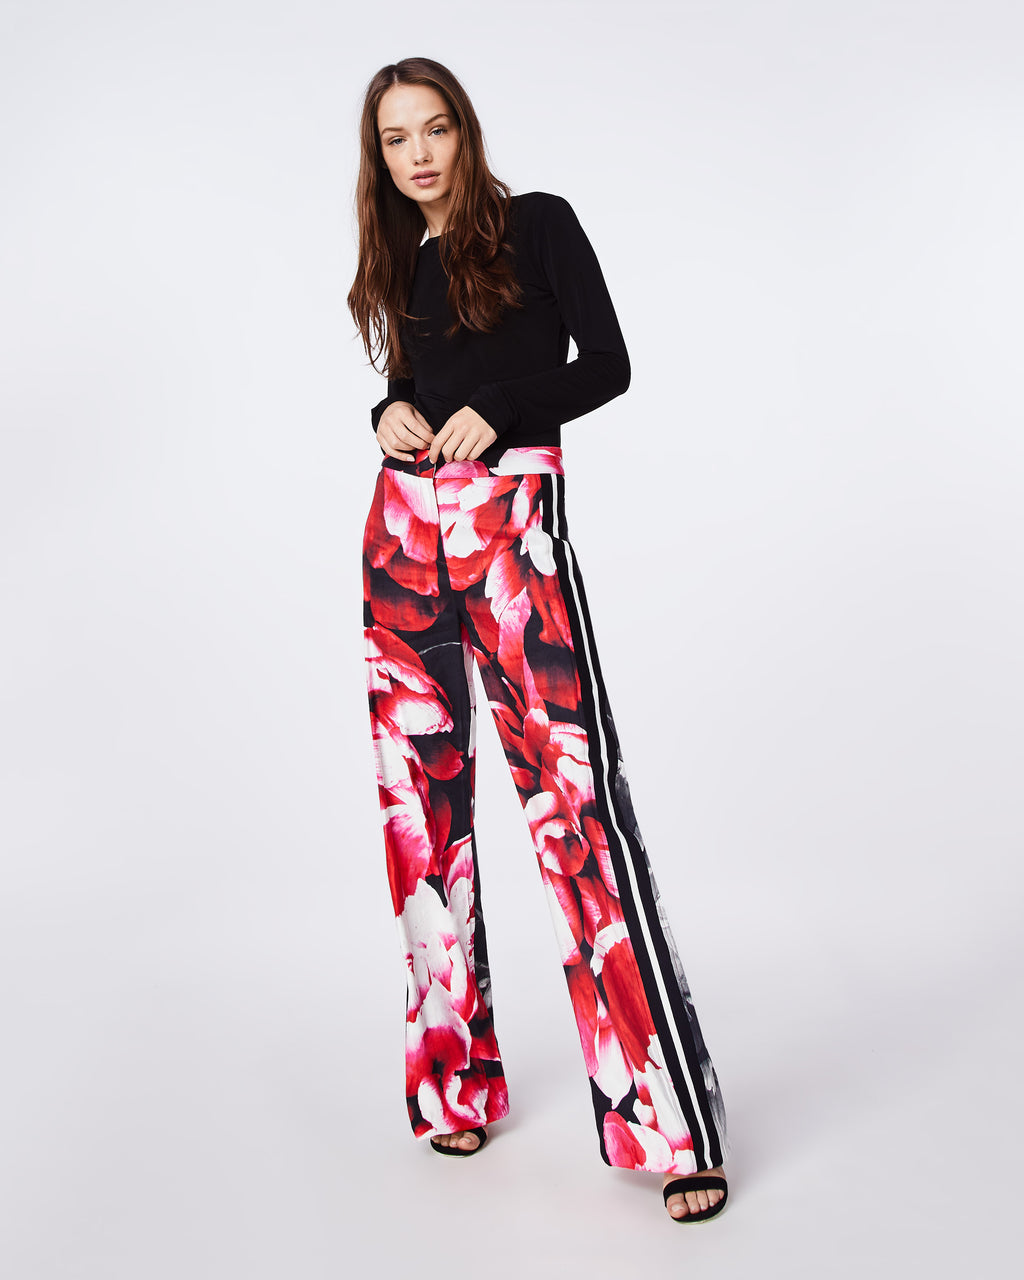 BO10158 - GIANT GARDEN PANT - bottoms - pants - THE BLACK AND WHITE RIBBED STRIPES ON THIS PANT ADD INTEREST TO AN EVERYDAY SILHOUETTE. PAIR WITH HEELS OR SNEAKERS.